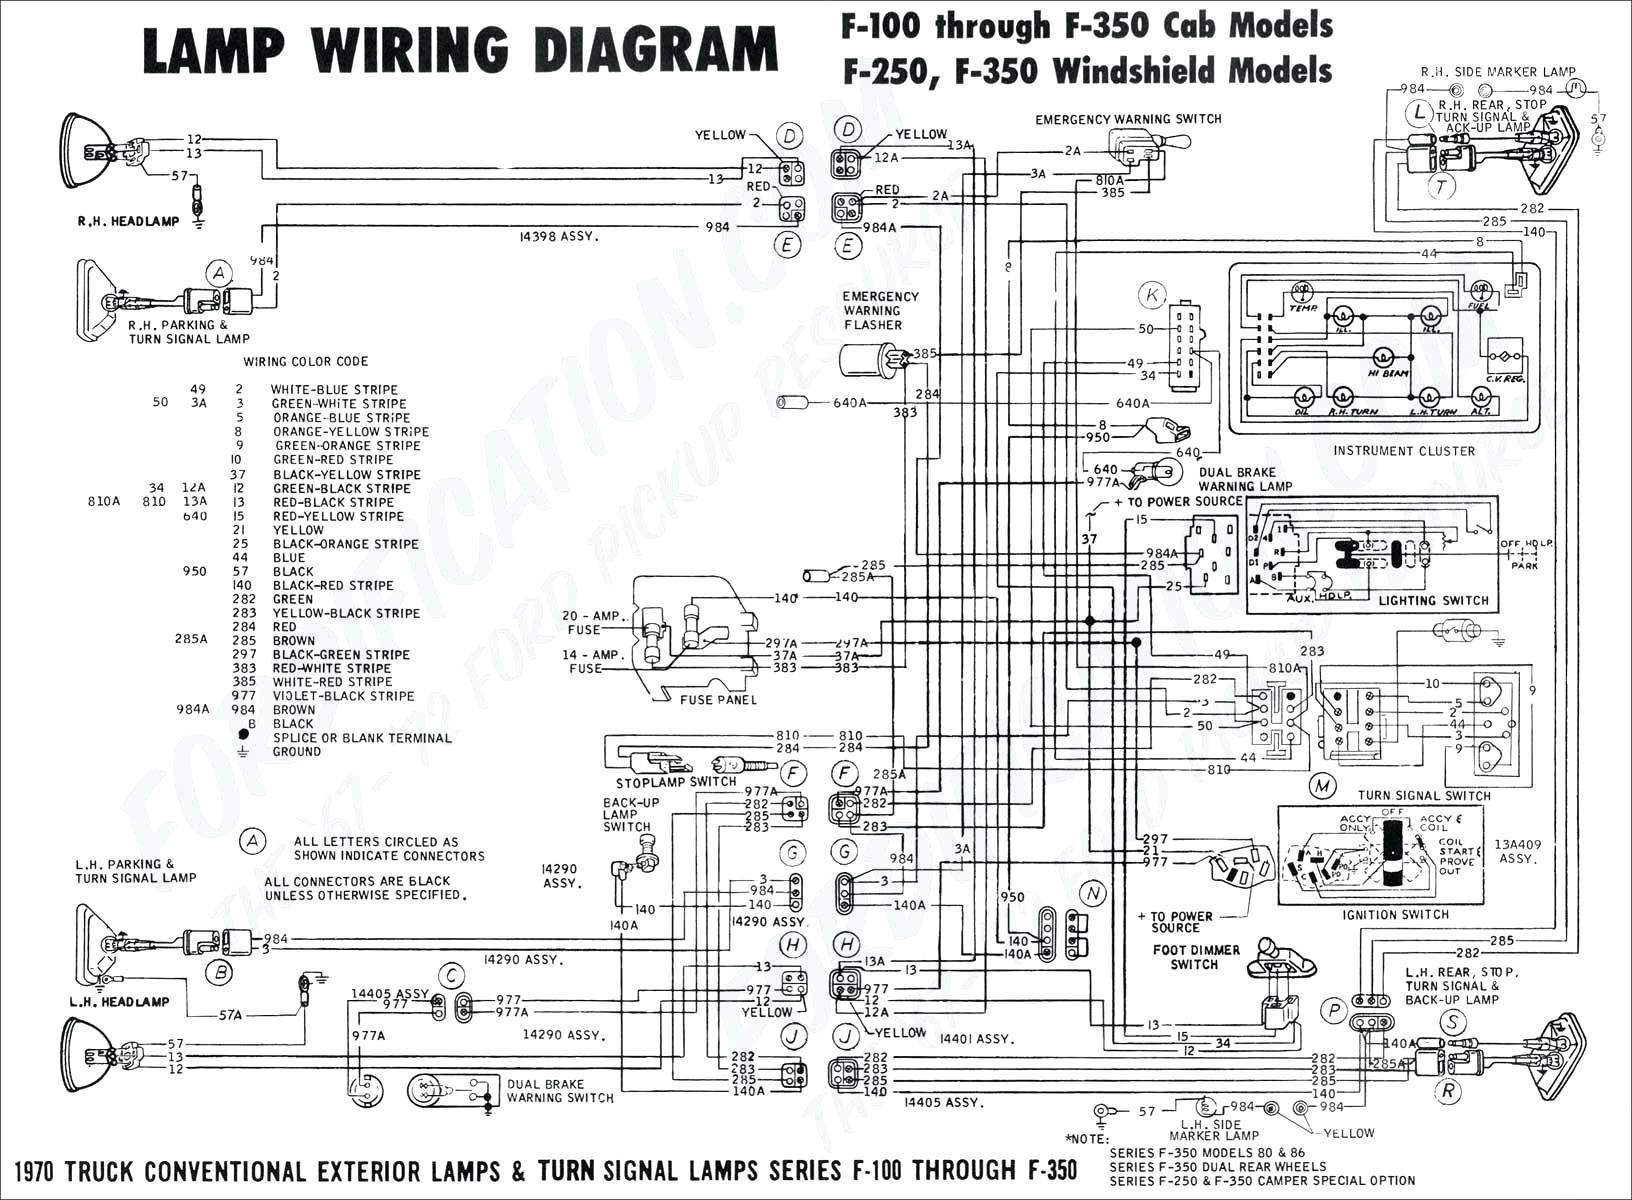 2015 Toyota Sienna Fog Light Wiring Diagram